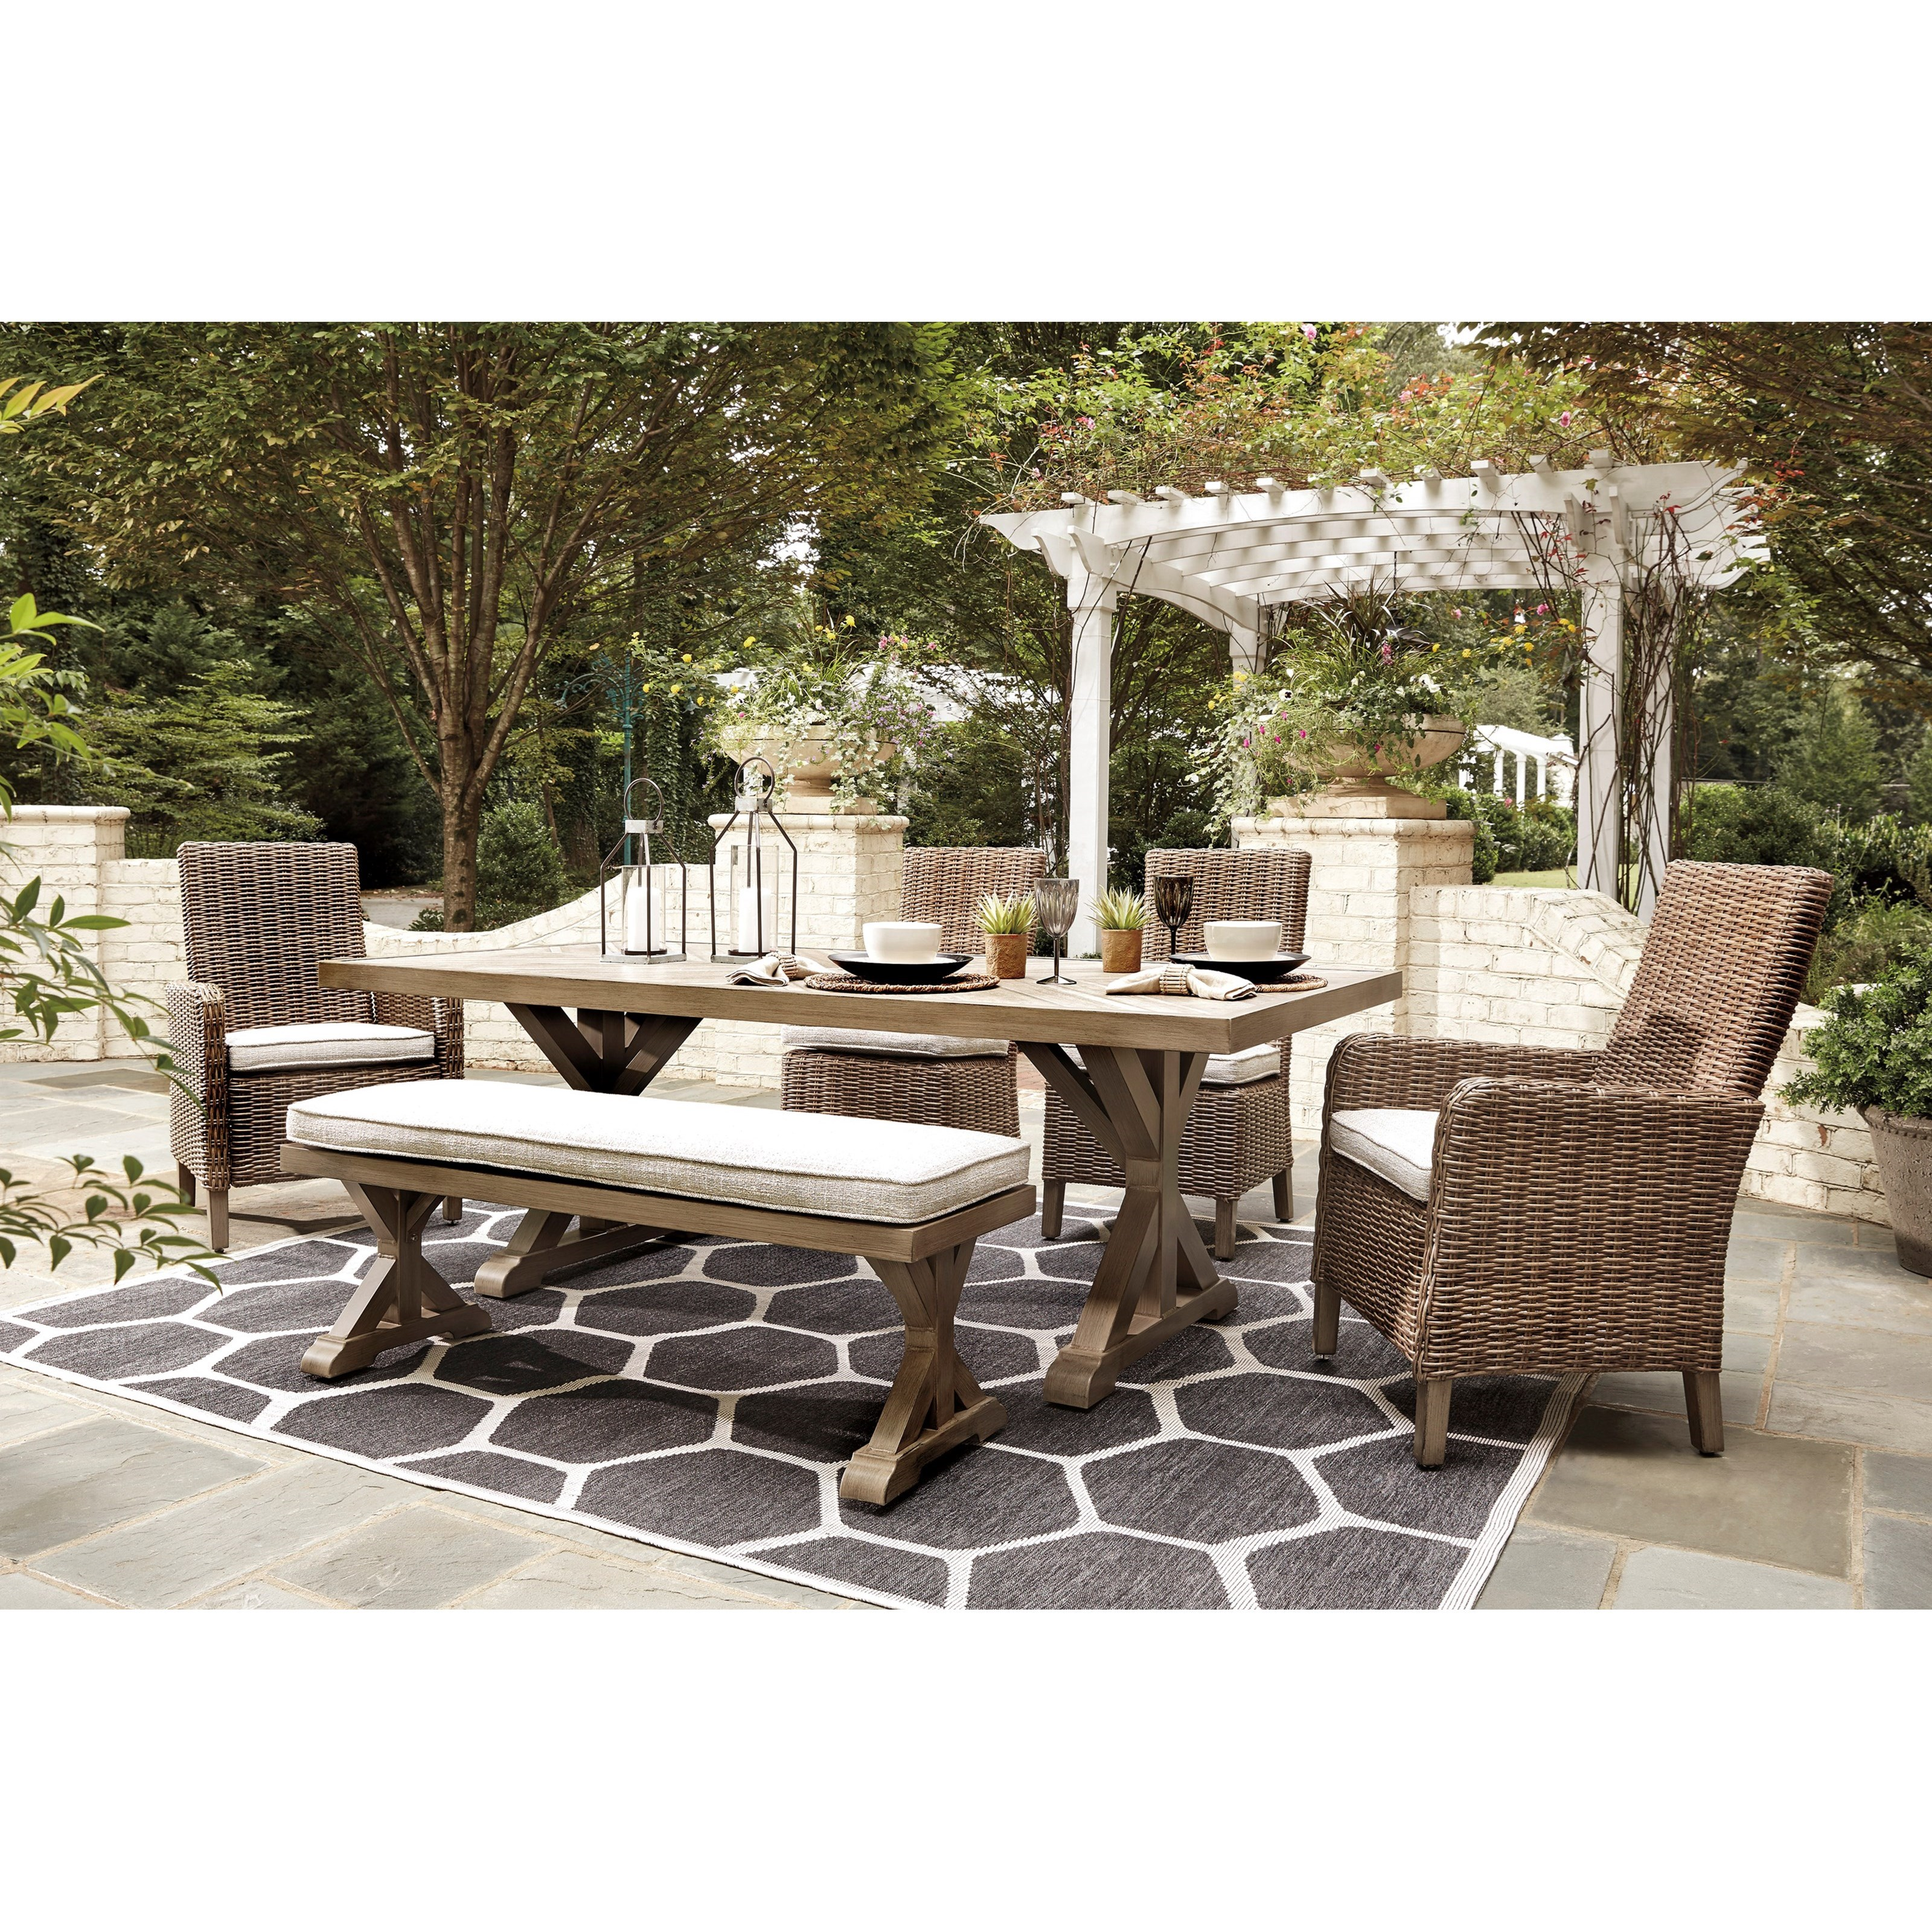 Beachcroft 6 Piece Outdoor Dining Set by Signature Design by Ashley at Sparks HomeStore